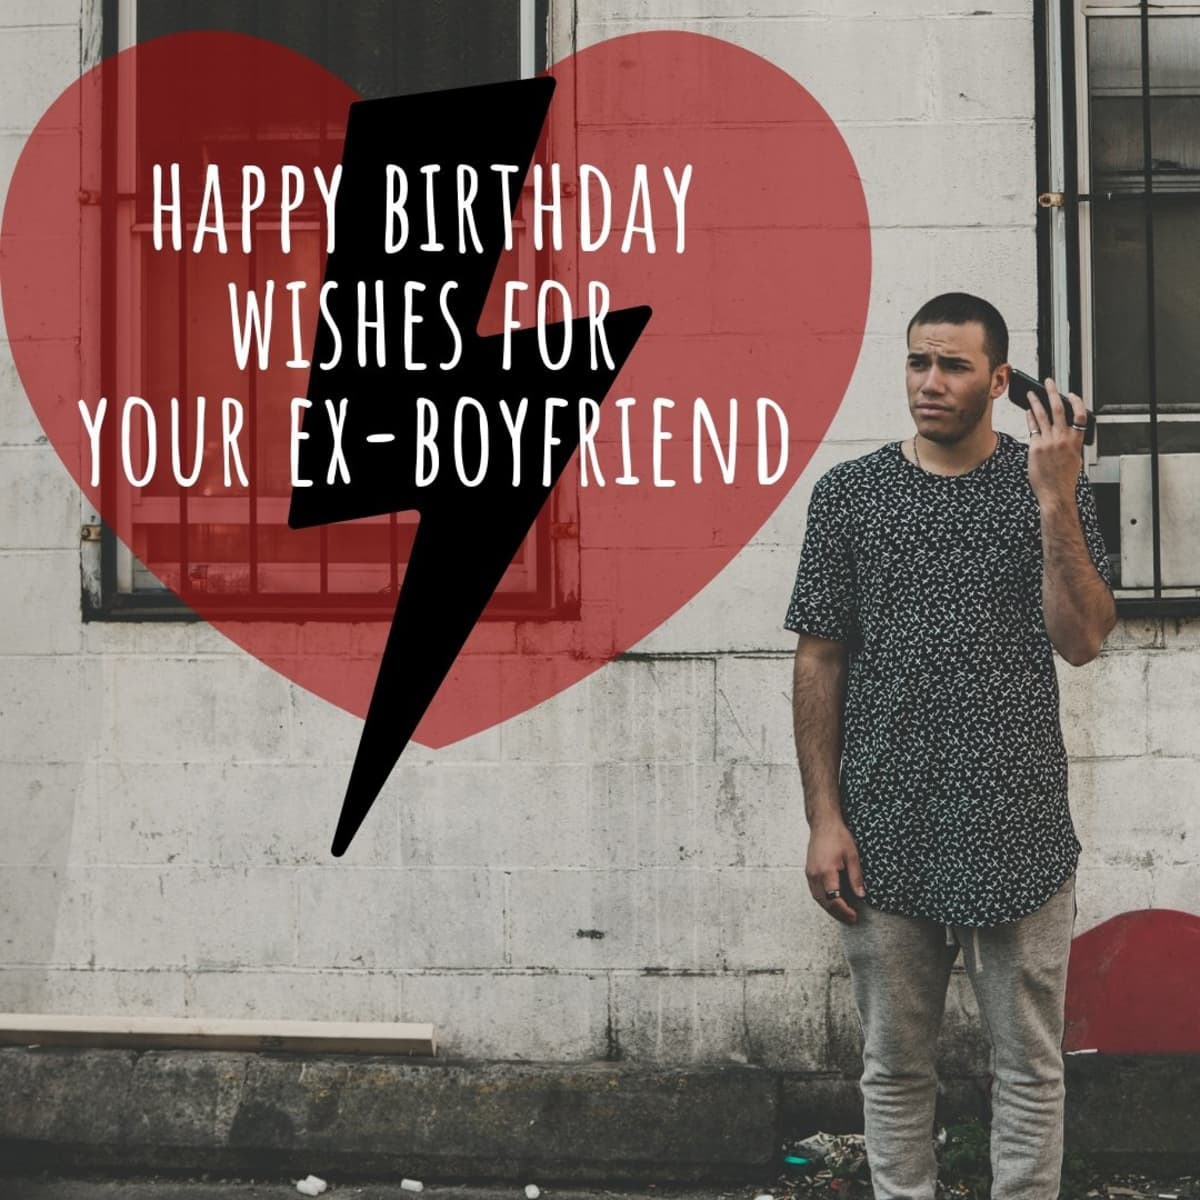 Happy Birthday Wishes For Your Ex Boyfriend Ideas For Short Wishes Messages And Poems Holidappy